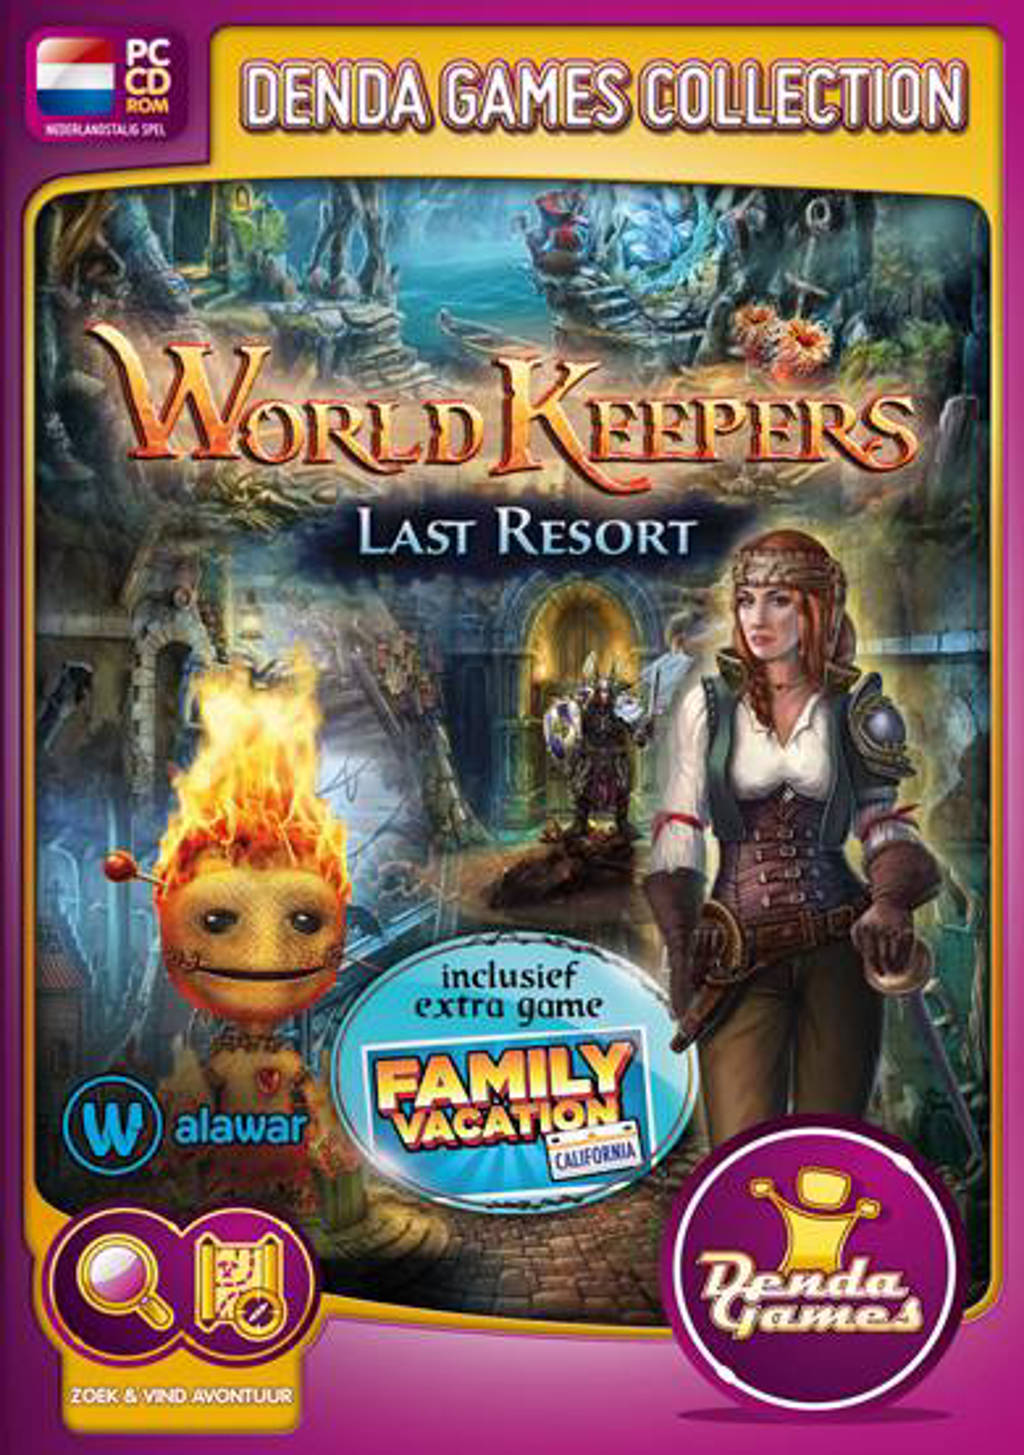 World keepers - Last resort (PC)